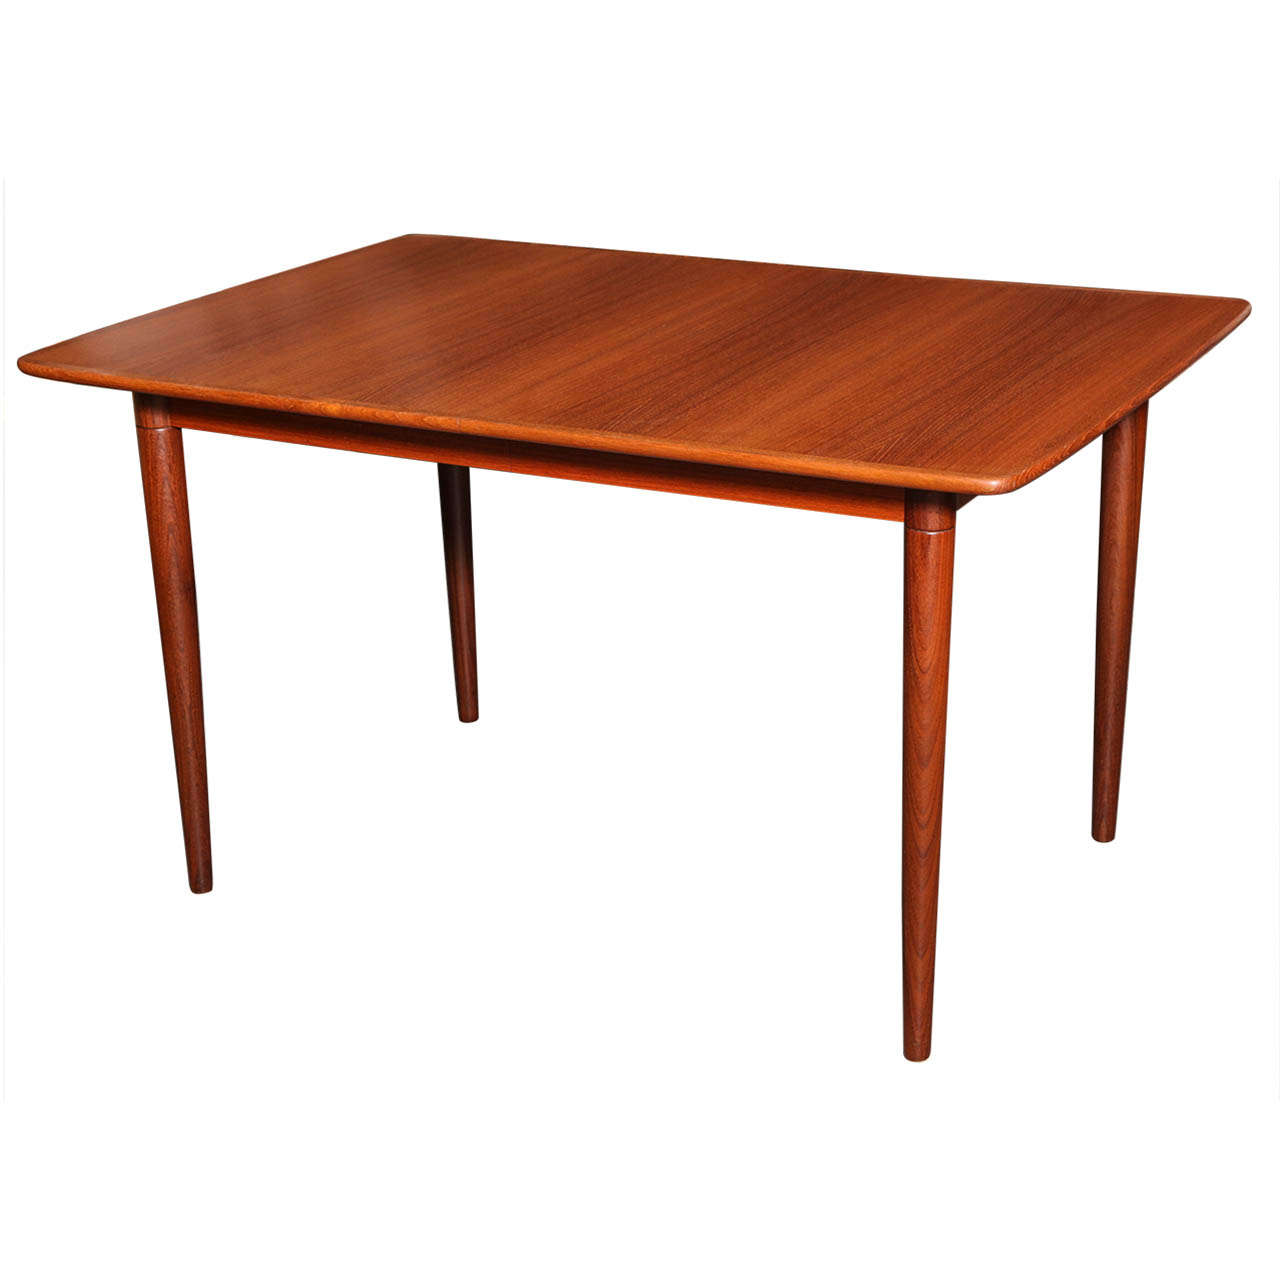 Teak extension dining table in excellent condition very clean and - Original Gustav Bahus Norwegian Teak Dining Table 1